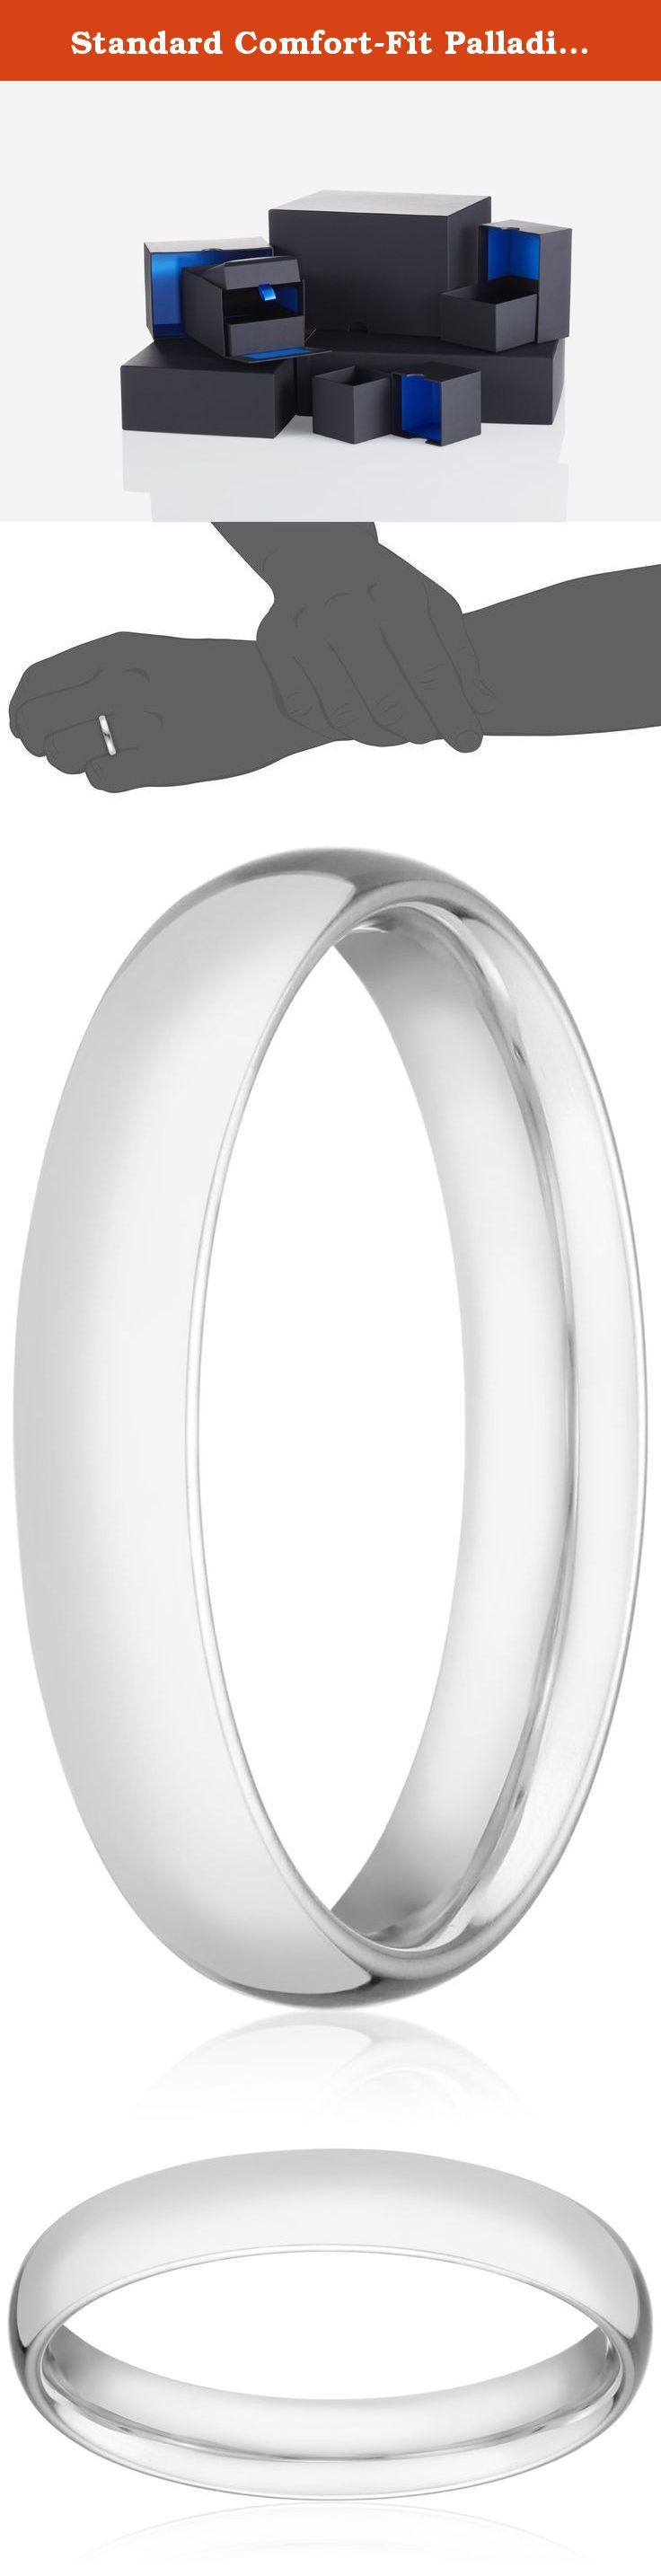 Standard Comfort-Fit Palladium Band, 4mm, Size 11.5. With its sleek metallic design, the Men's Palladium Comfort Fit Wedding Band Ring with Luxury High Polish is a classic piece he will enjoy wearing every day. This ring is 4mm in width and is polished to reveal incredible shine. Embracing comfort-fit design, the band grants relaxing wear from day to night. Crafted out of Palladium, a white precious metal from the platinum group, it is a quality accessory that will last.